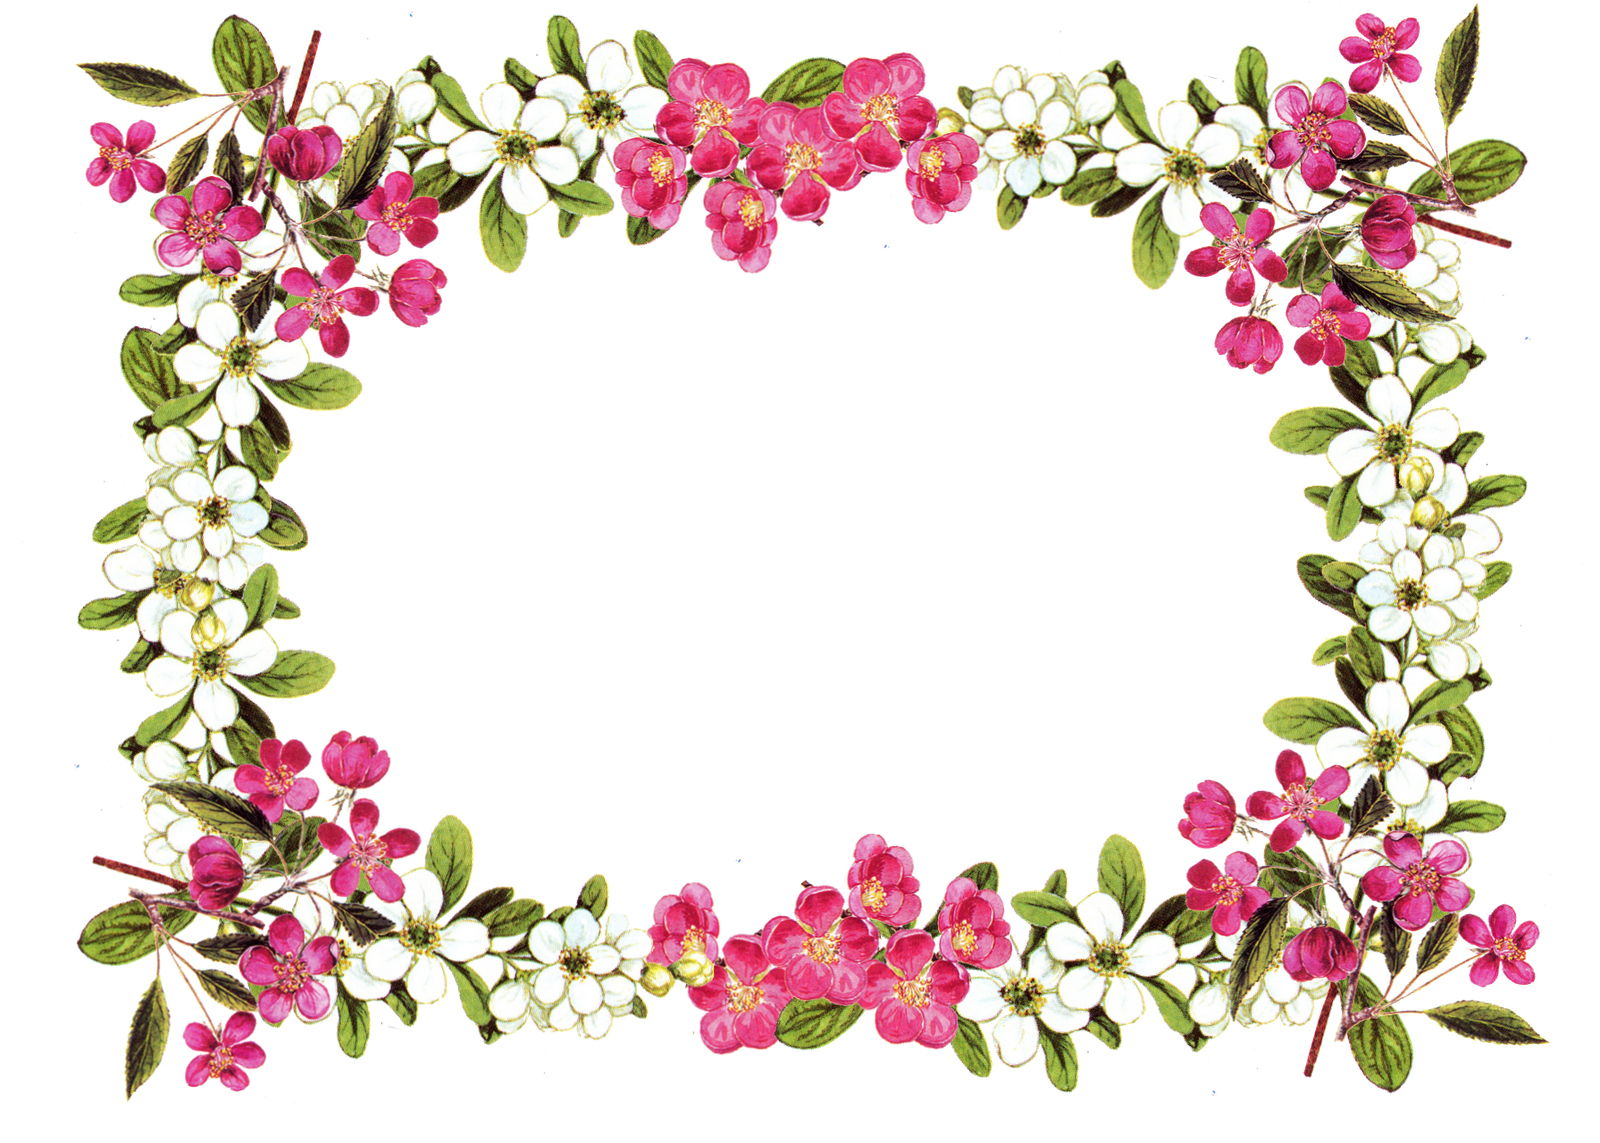 Pin by Adele Gilmore on wow | Pinterest | Flower frame, Flowers and ...